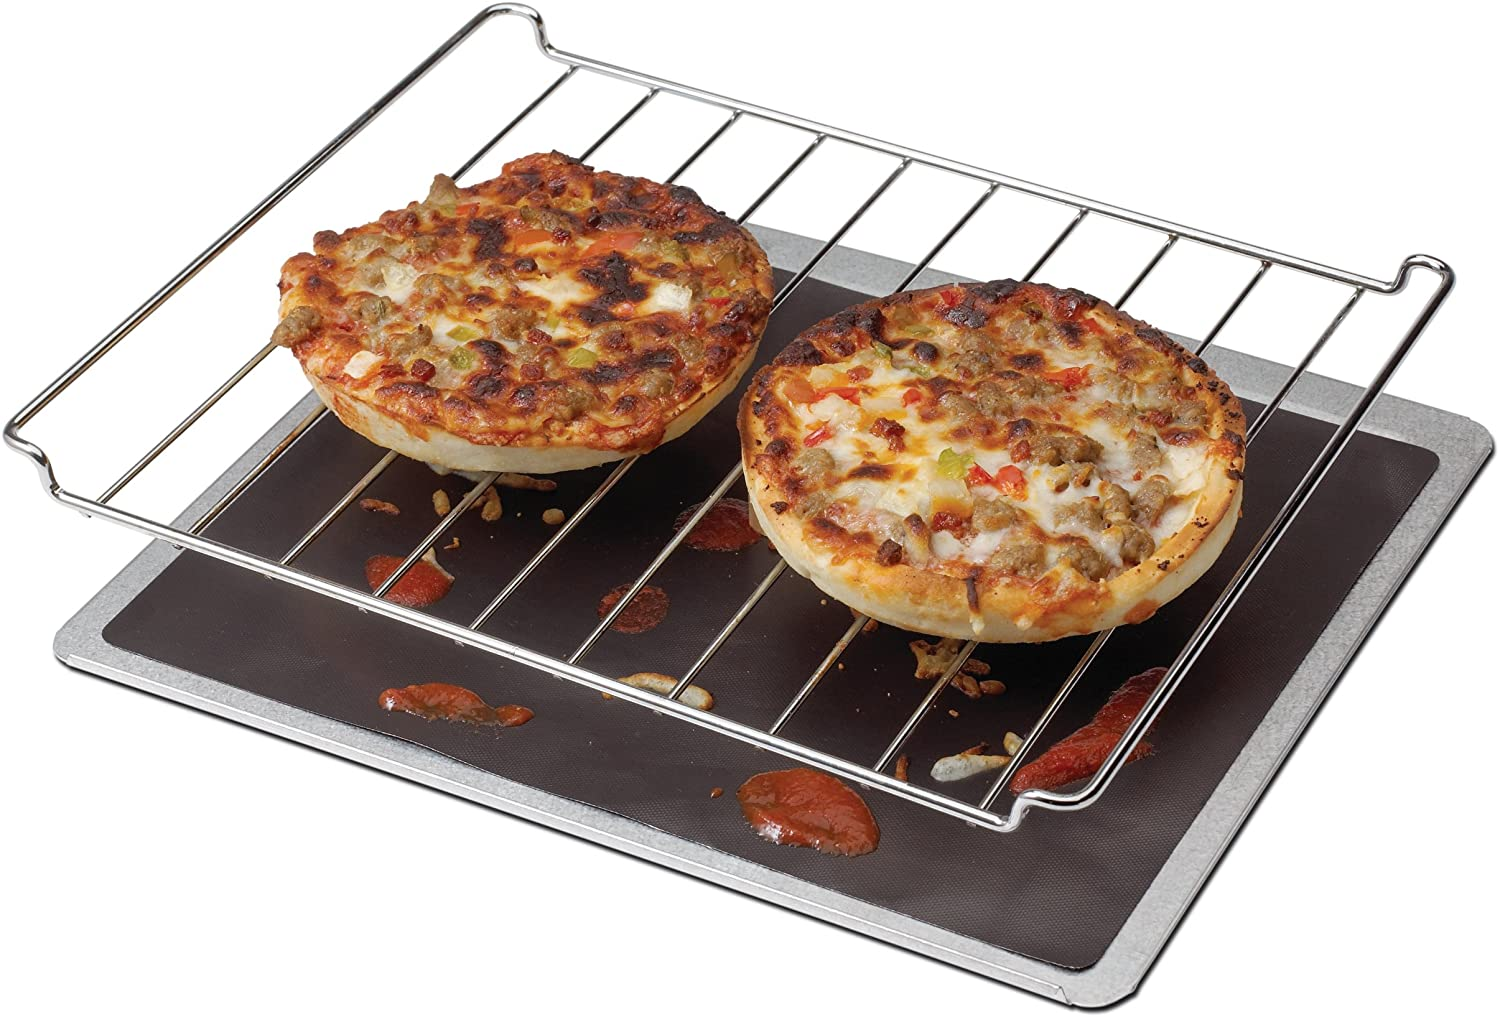 Chef's Planet Nonstick Toaster Oven Liner with pizzas on top